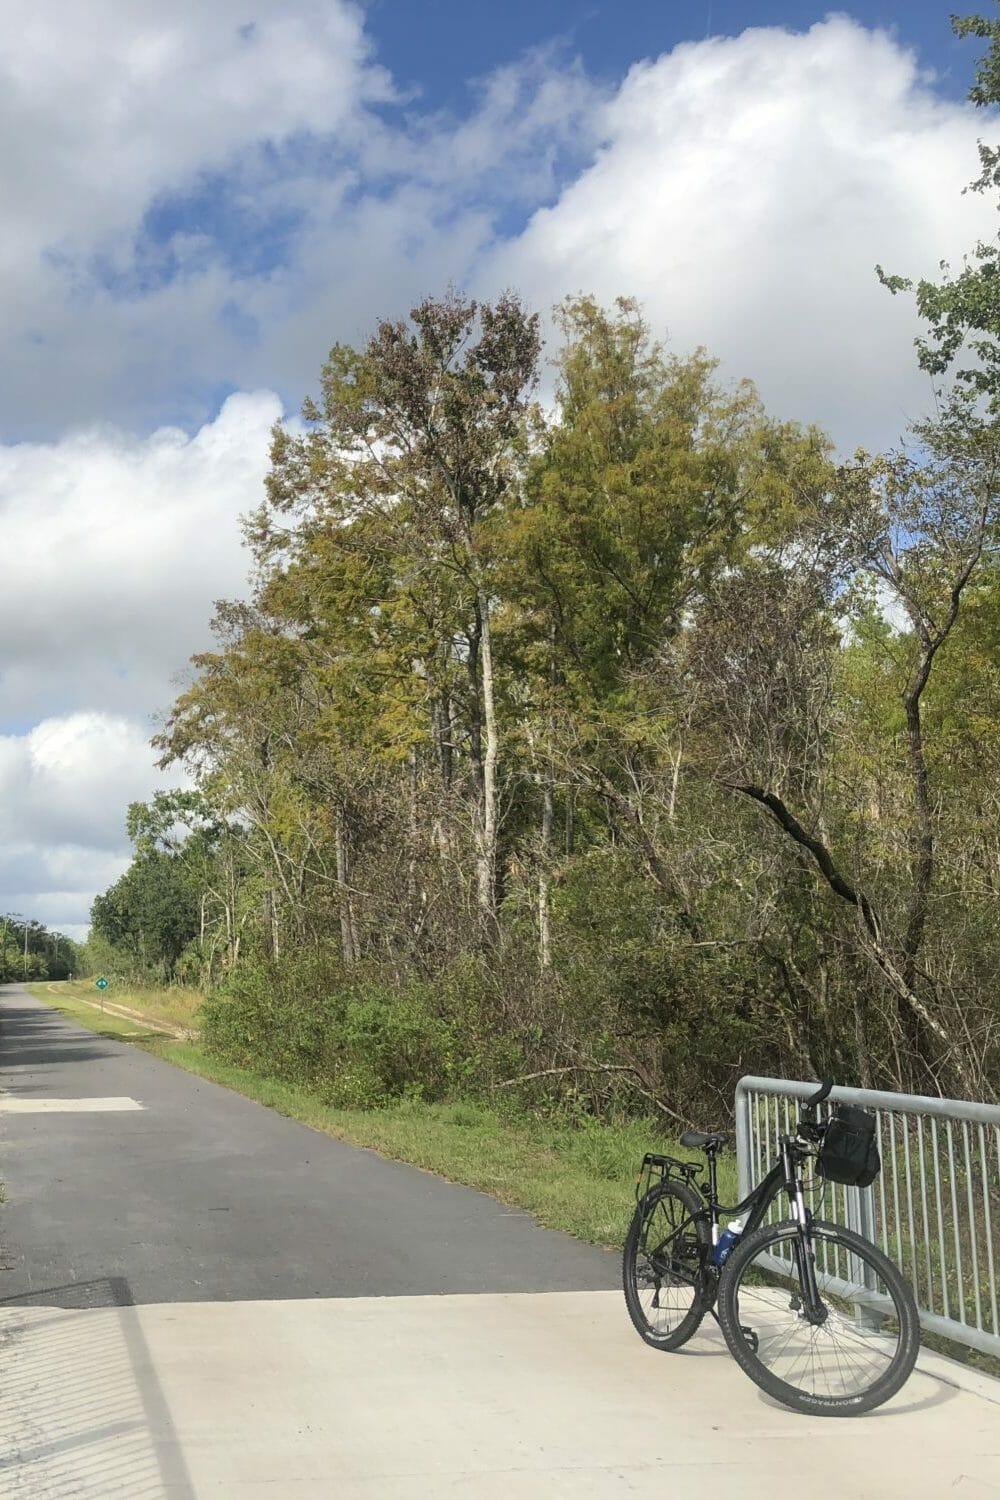 The 16.4-mile Brevard Coast to Coast Trail connects Titusville to Maytown on the longest dedicated paved bike path in the county. It is the eastern end of the state-spanning 250-mile-plus Coast to Coast Trail, which will eventually reach the Atlantic Ocean at Playalinda Beach in Canaveral National Seashore.